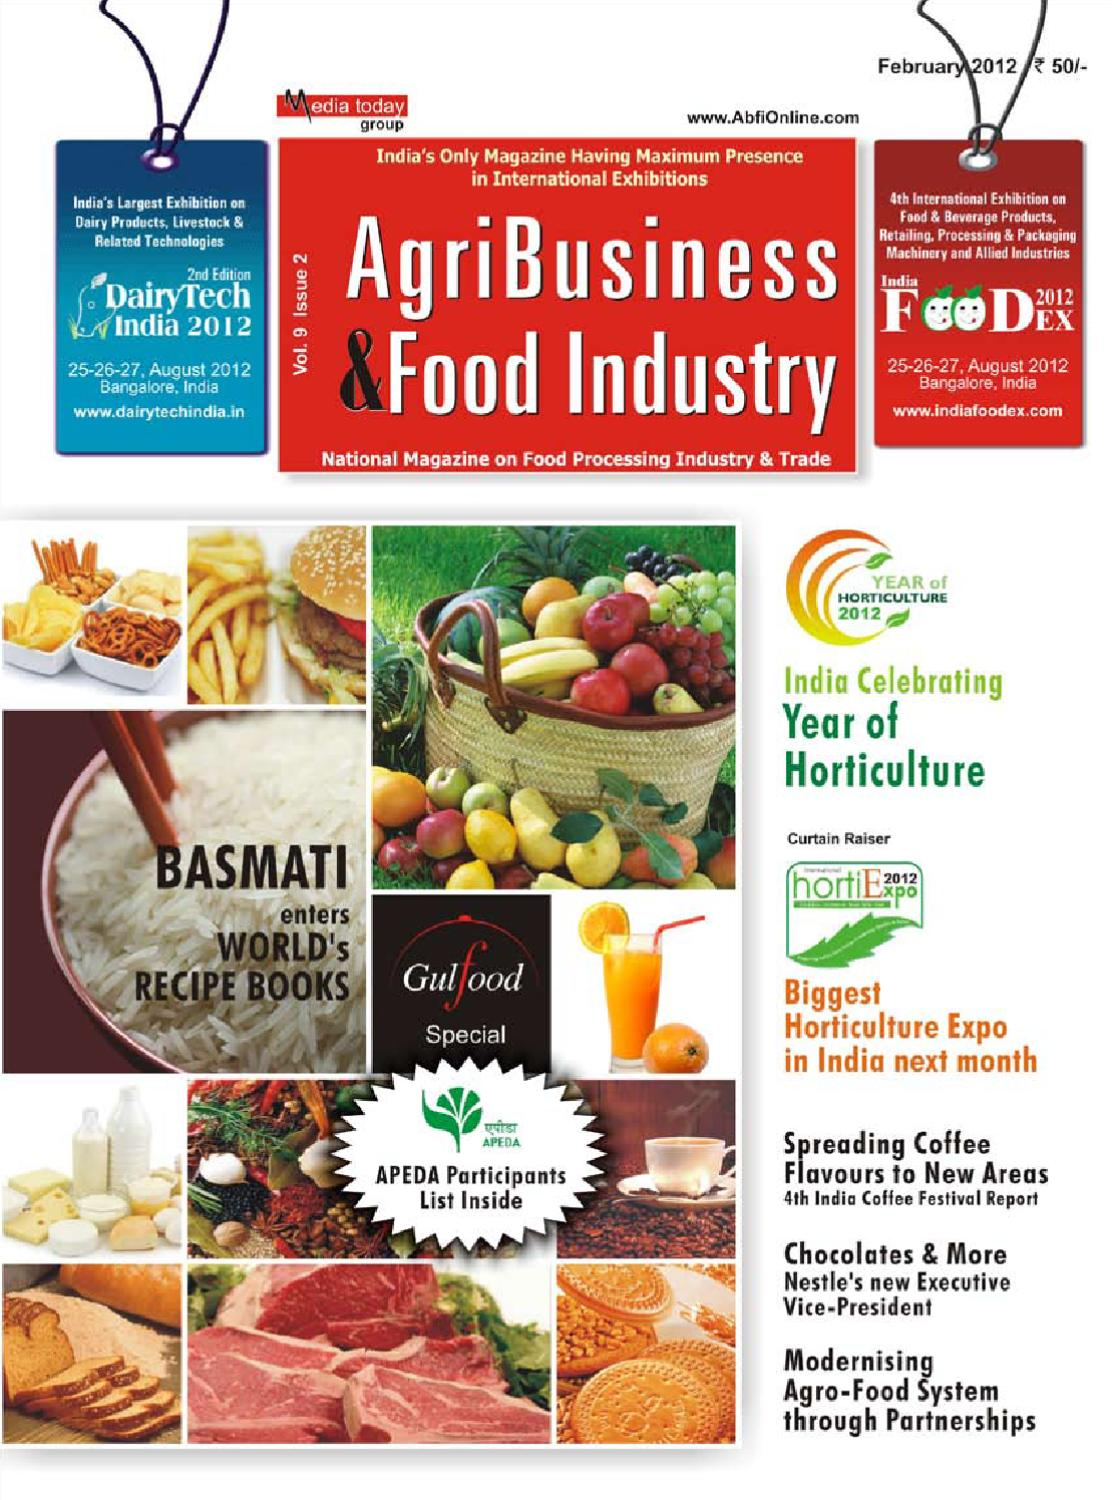 AGRI BUSINESS & FOOD INDUSTRY- February Issue by Media Today